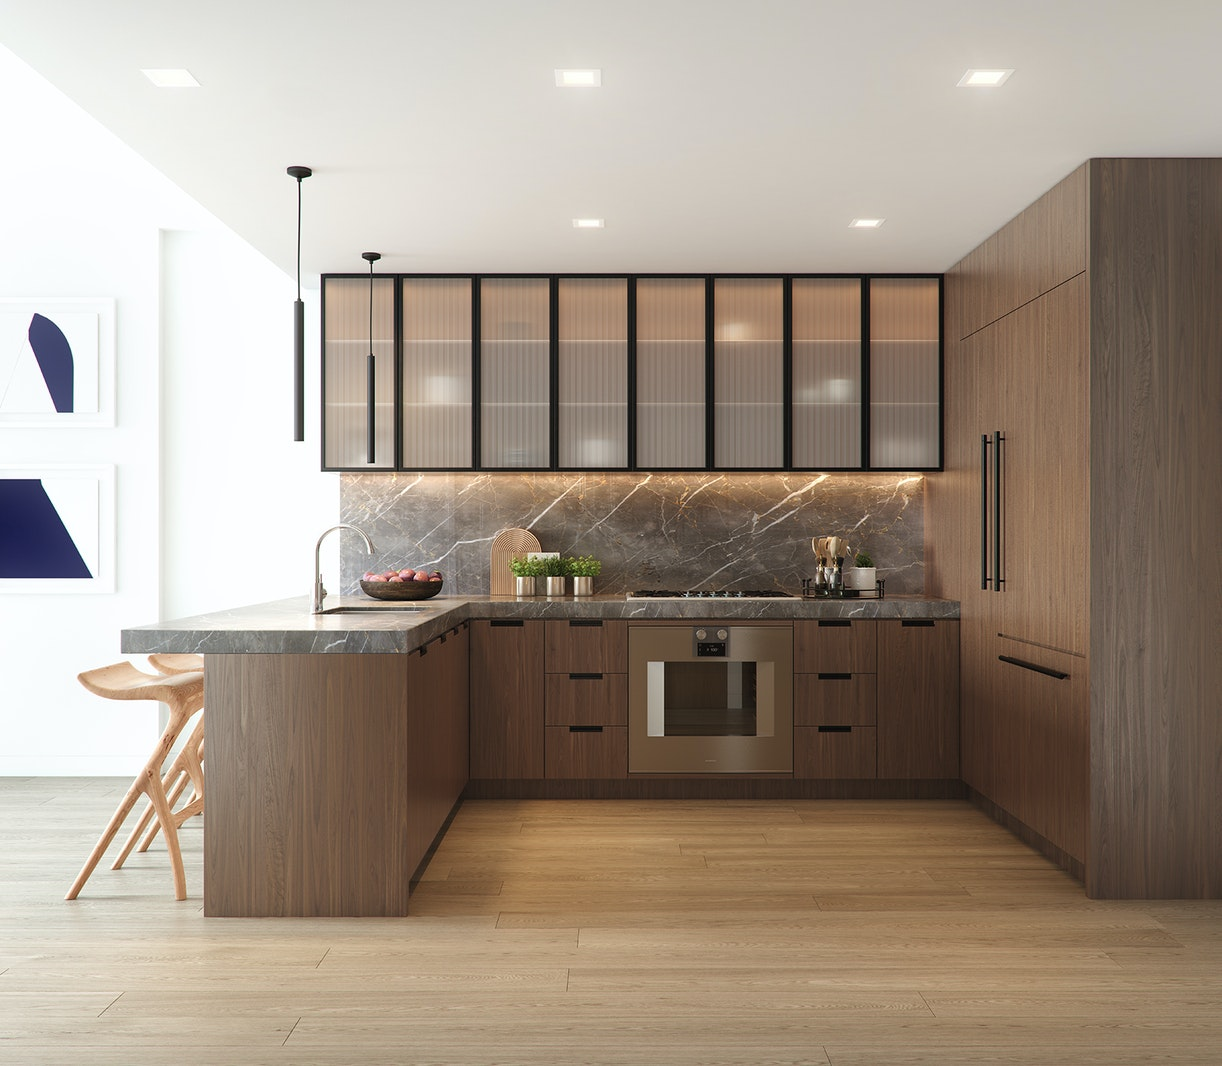 269 Fourth Avenue 503, Park Slope, Brooklyn, NY, 11215, $1,995,000, Property For Sale, Halstead Real Estate, Photo 2